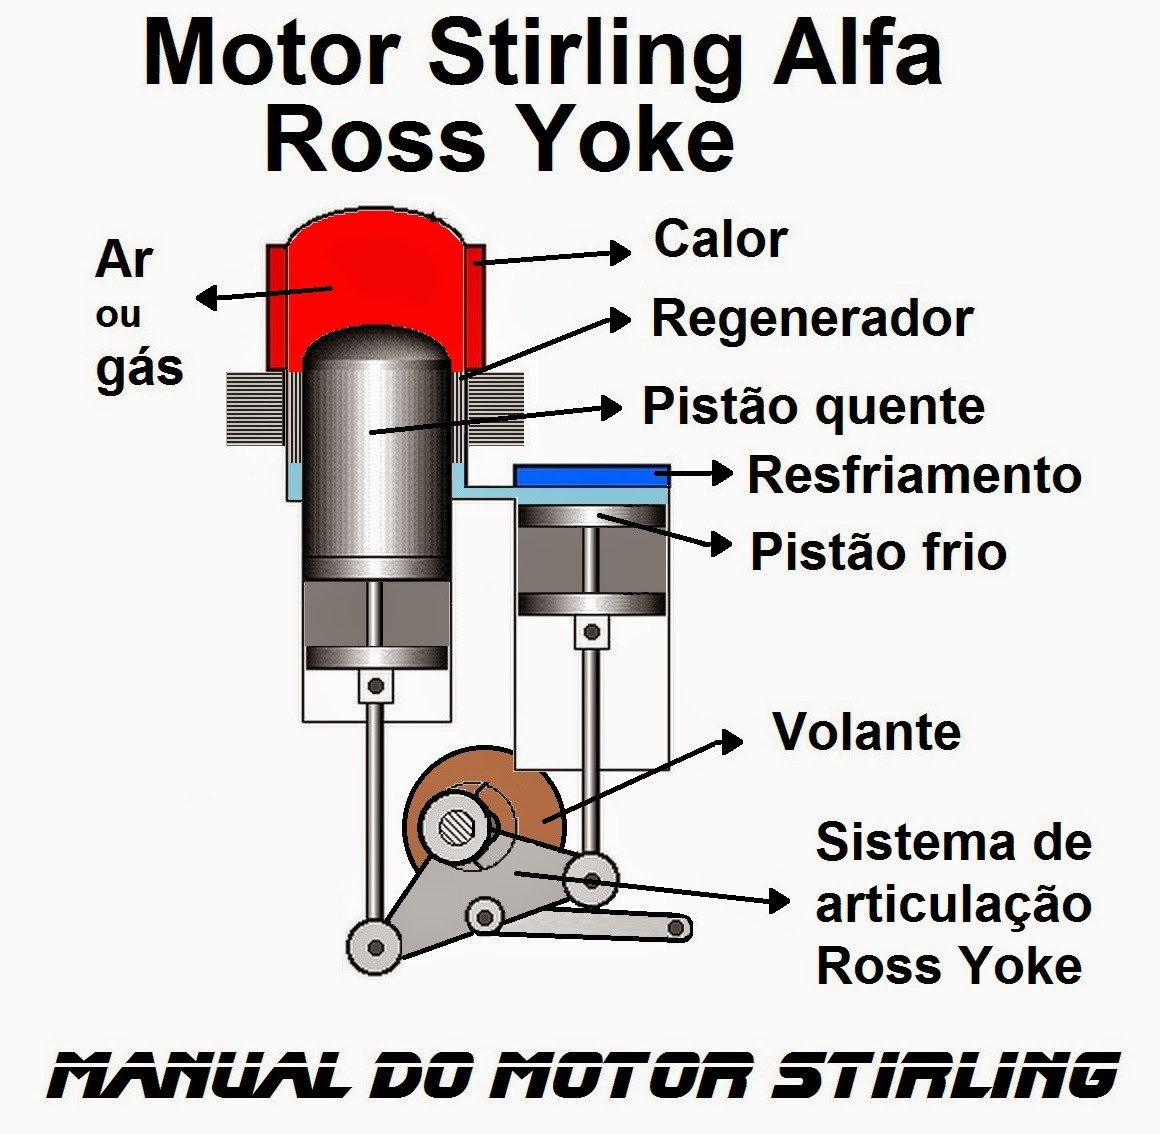 Manual do motor Stirling Alfa Ross Yoke, diagrama